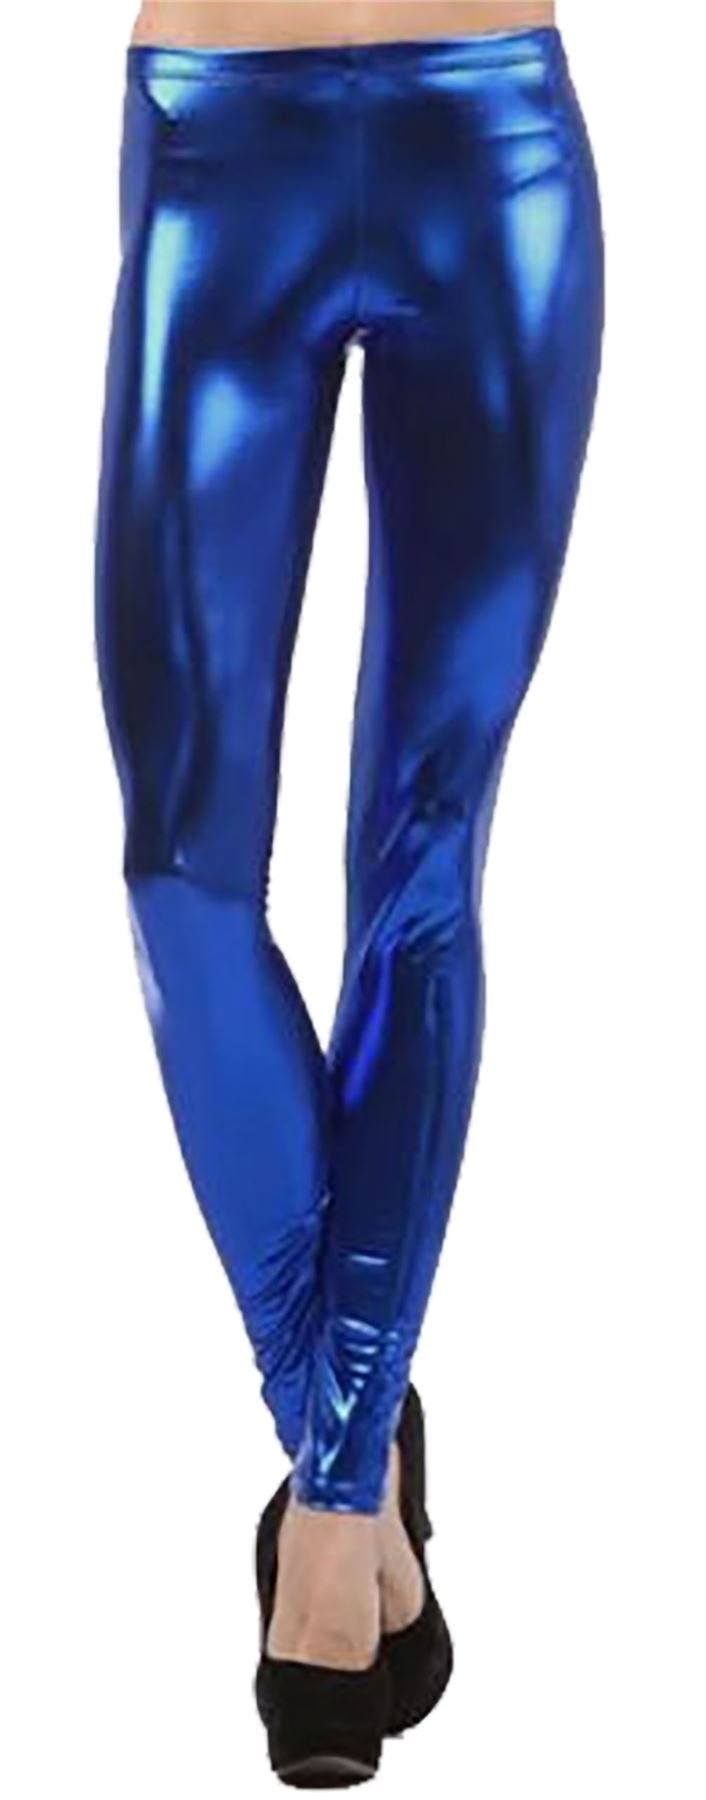 RIDDLED WITH STYLE Womens Stretch Shiny Metallic Legging Ladies Novelty Wet Look Disco Skinny Pants#(Royal Blue Wet Look Metallic Leggings#US 14-16#Womens)